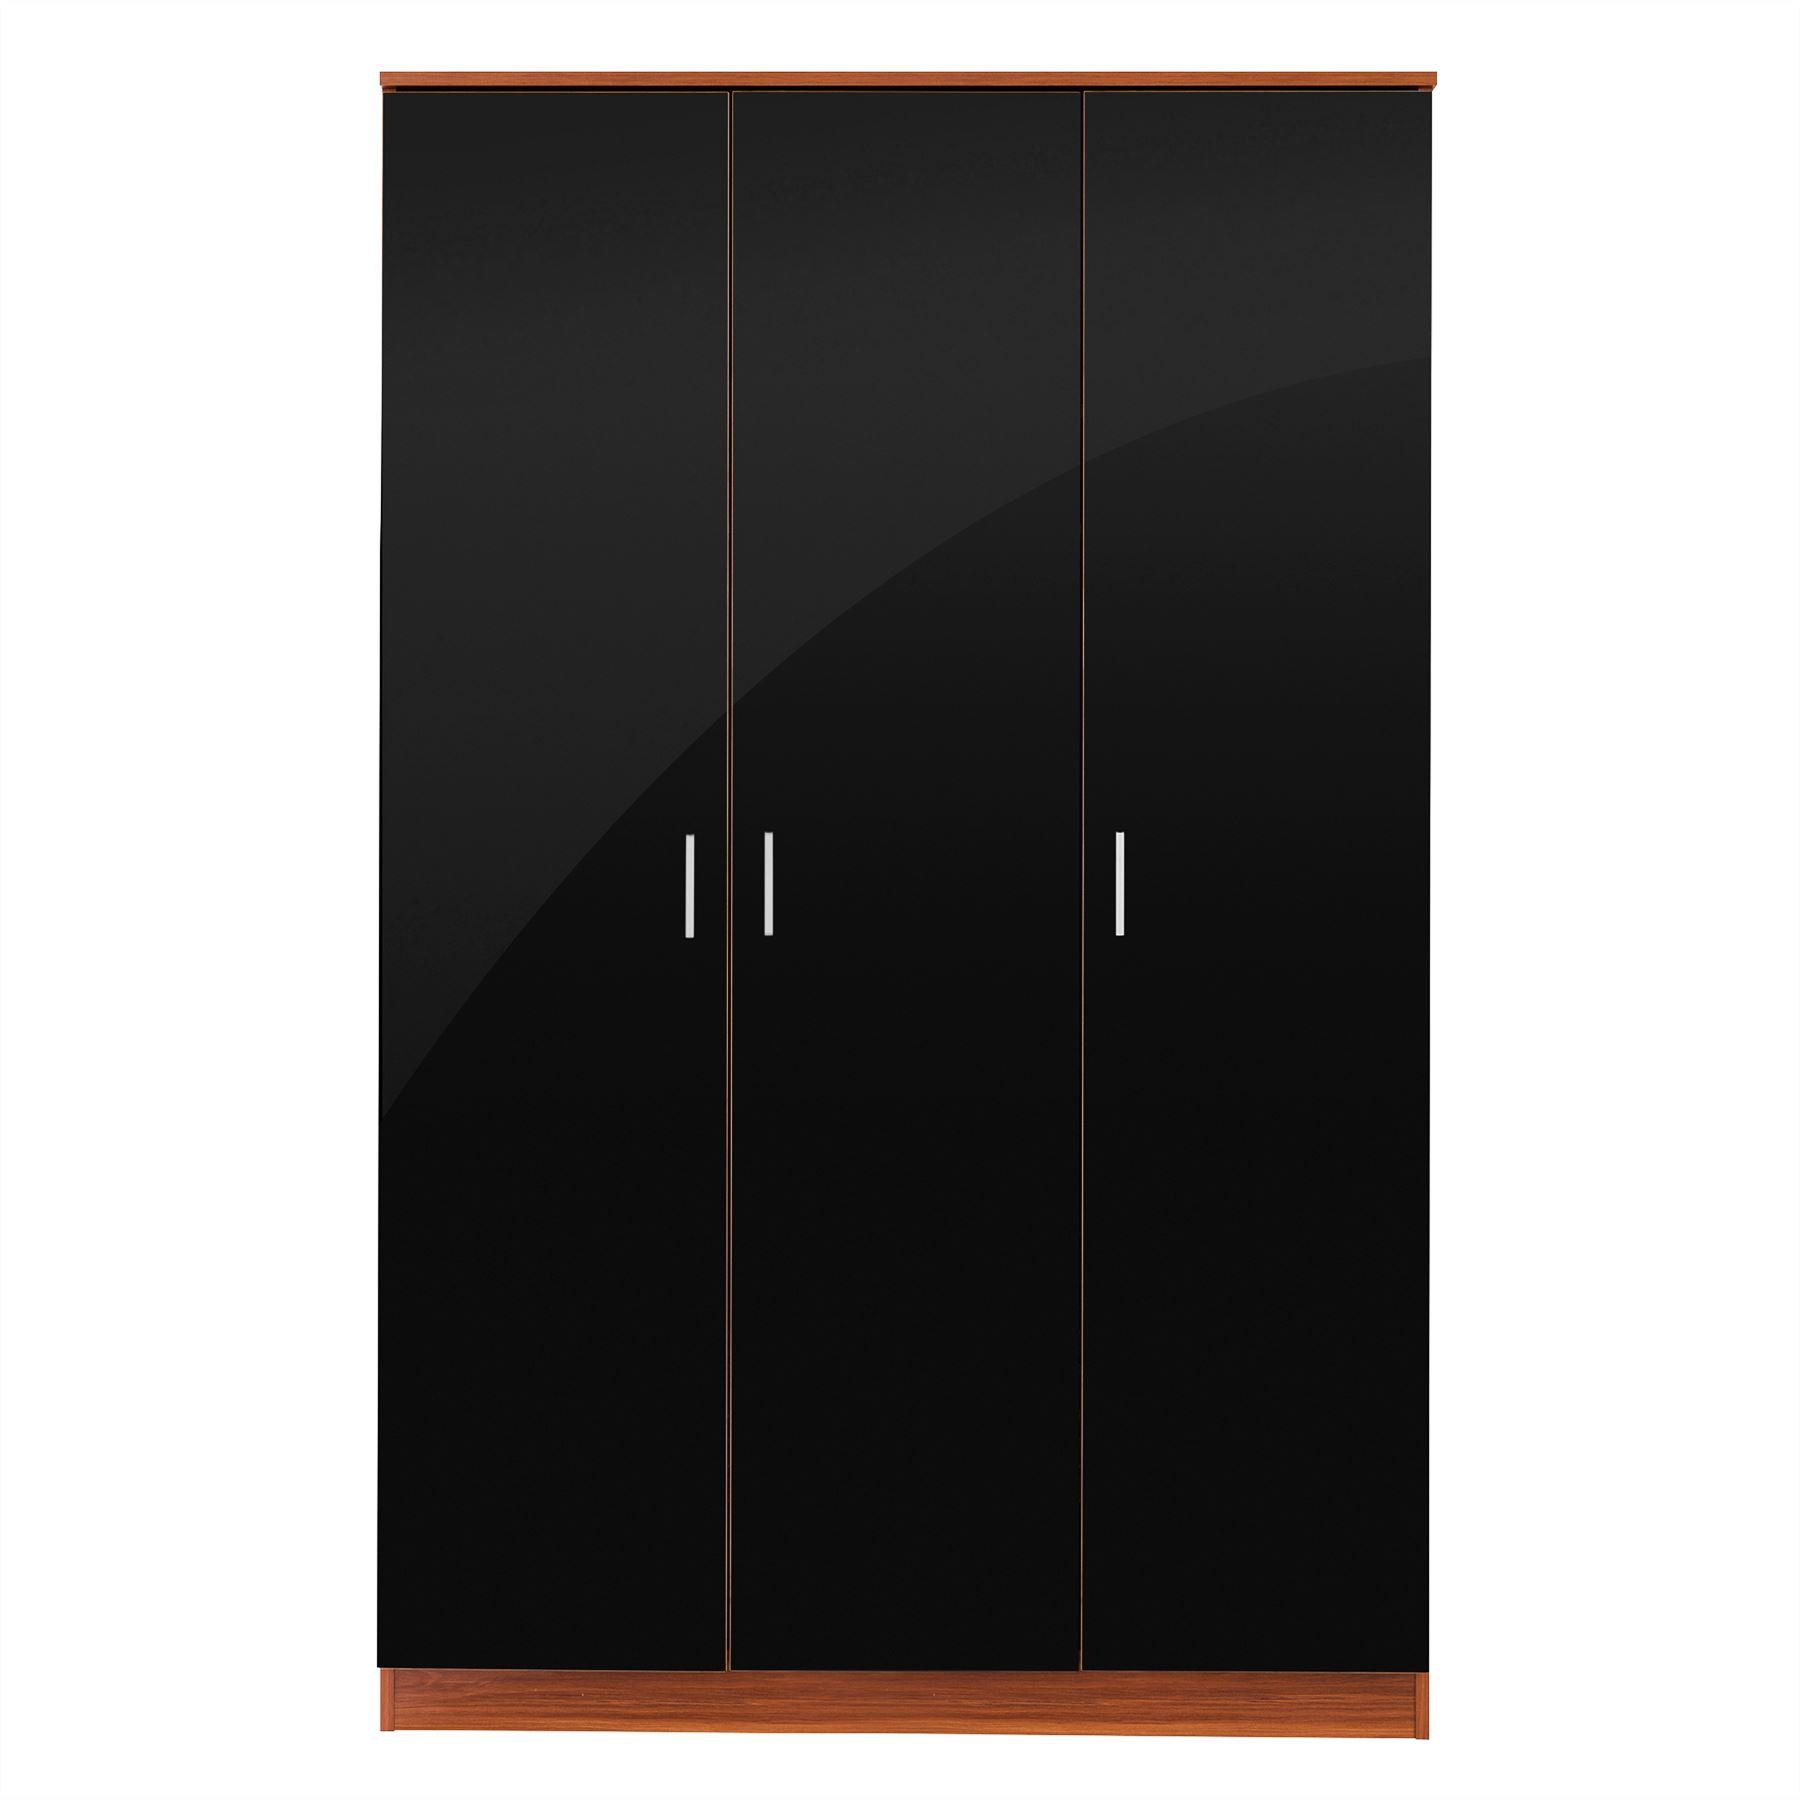 Caspian High Gloss Black & Walnut Bedroom Furniture Set Full